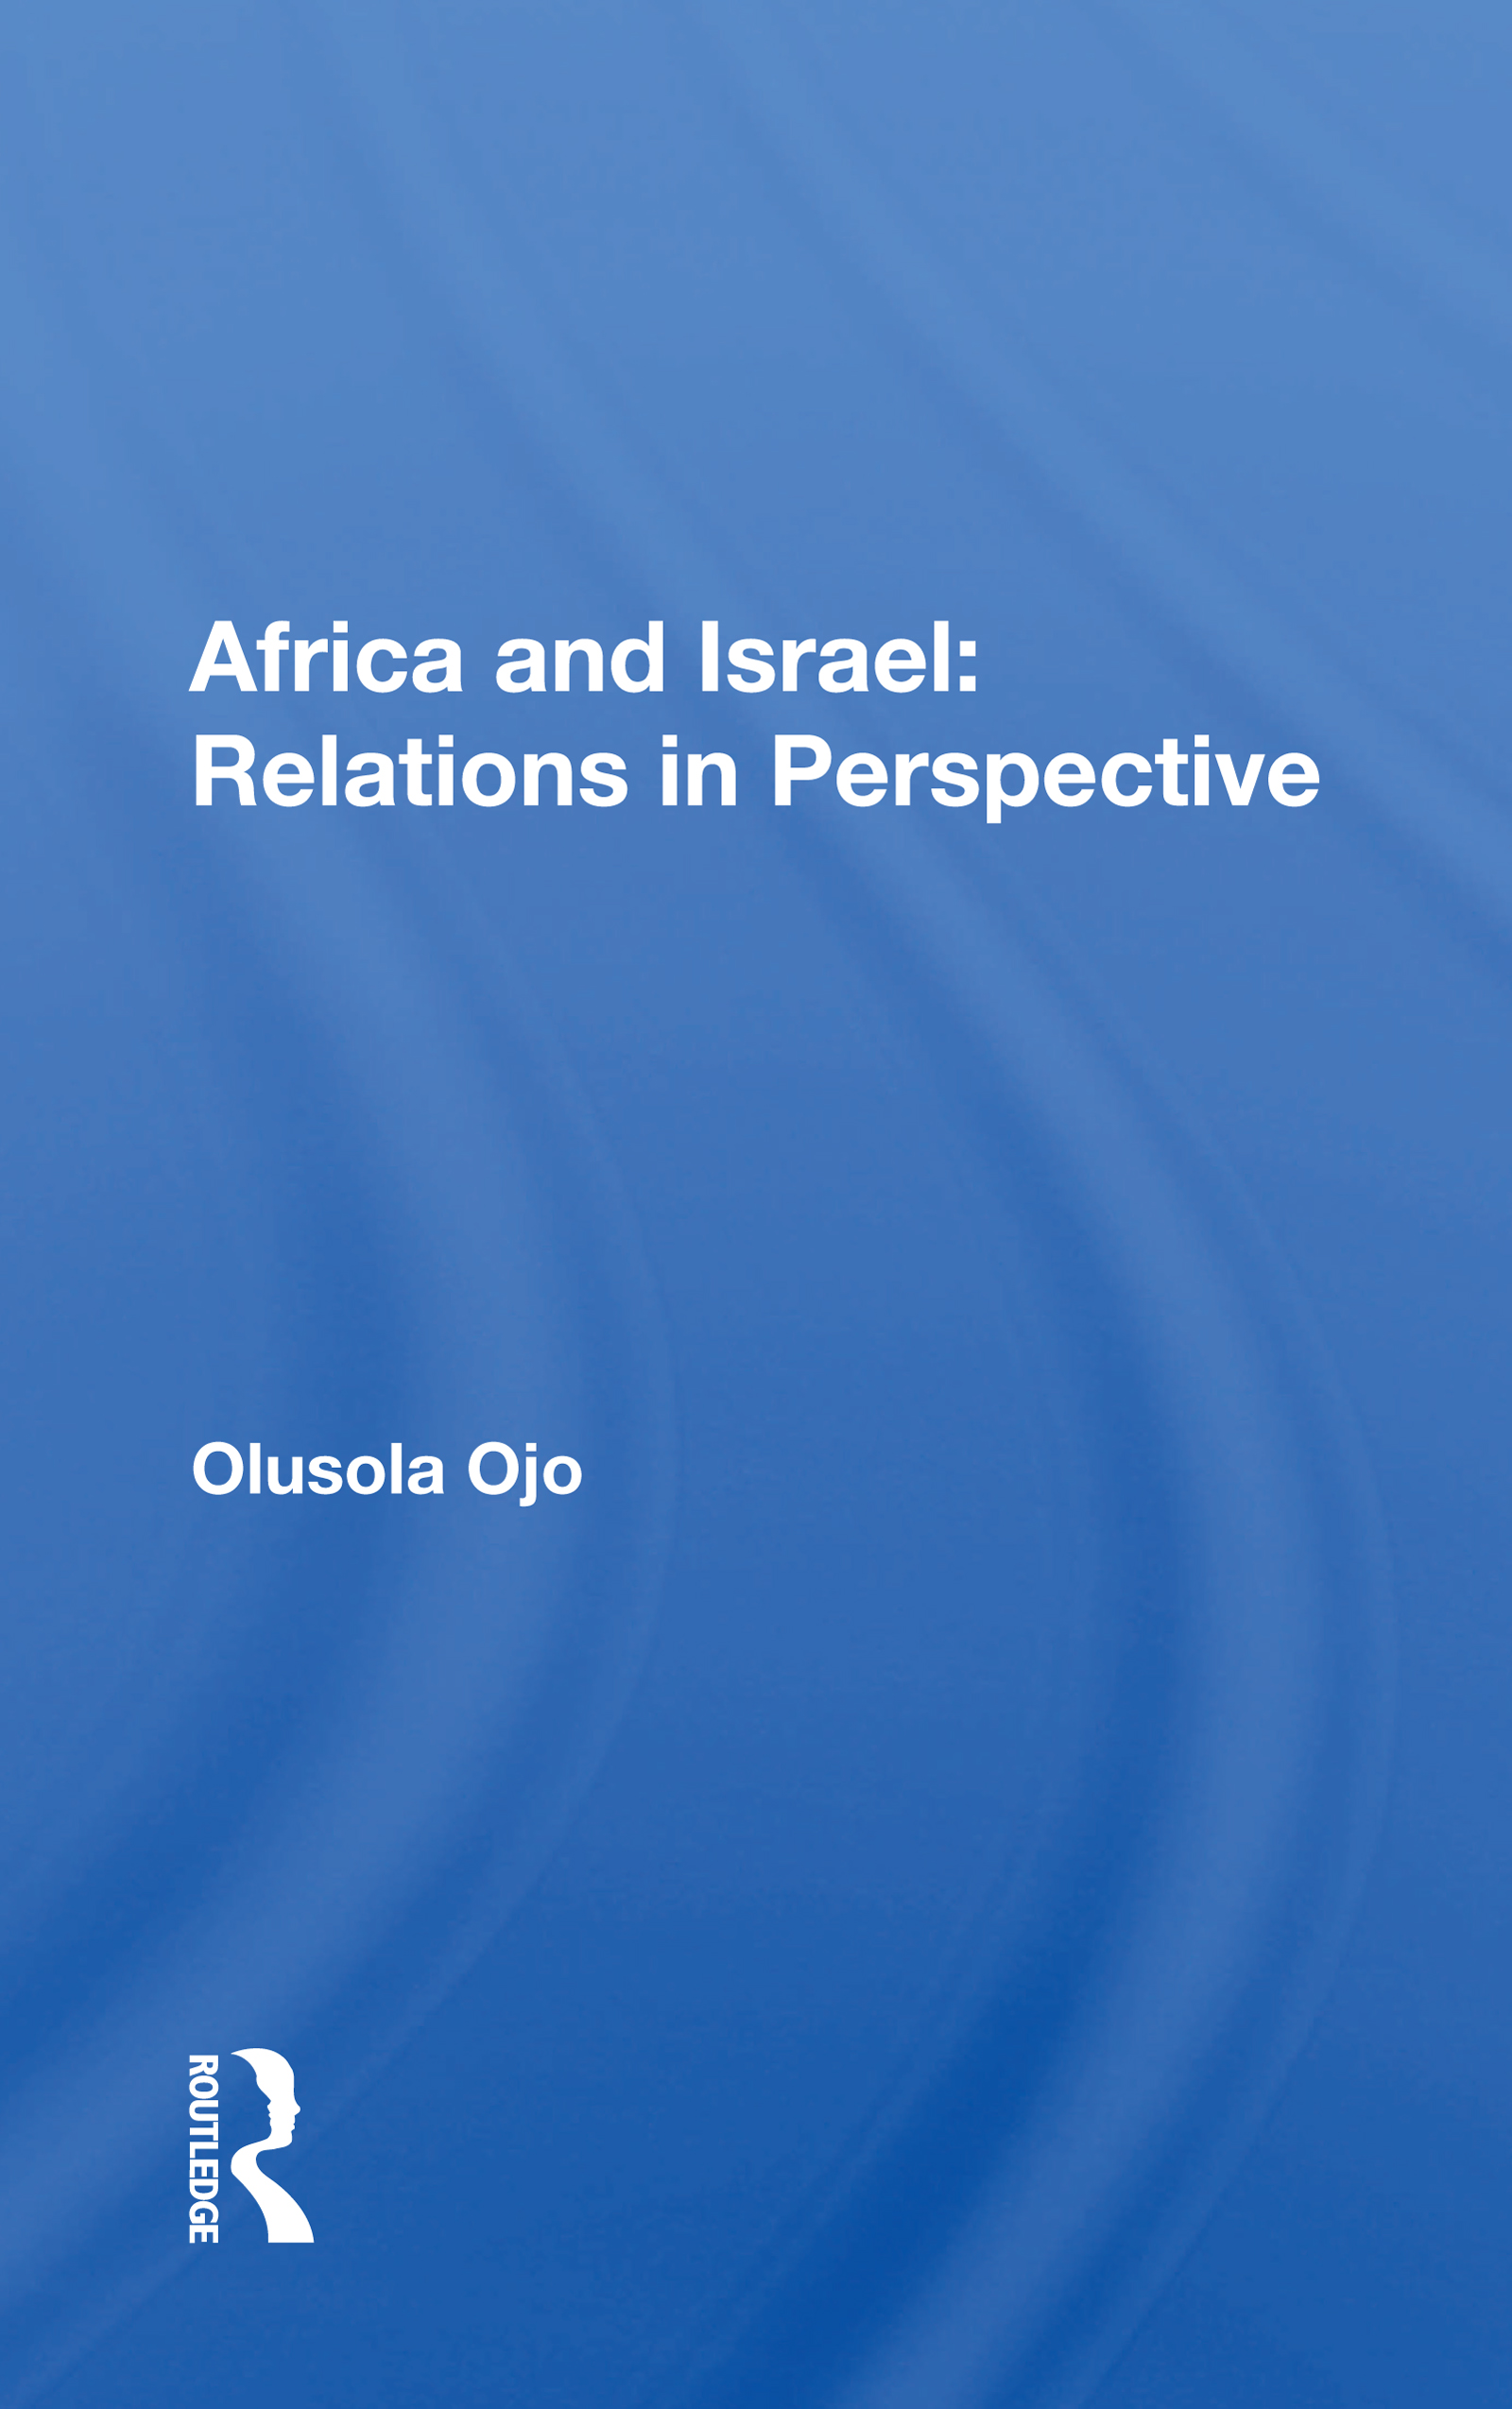 Africa and Israel: Relations in Perspective